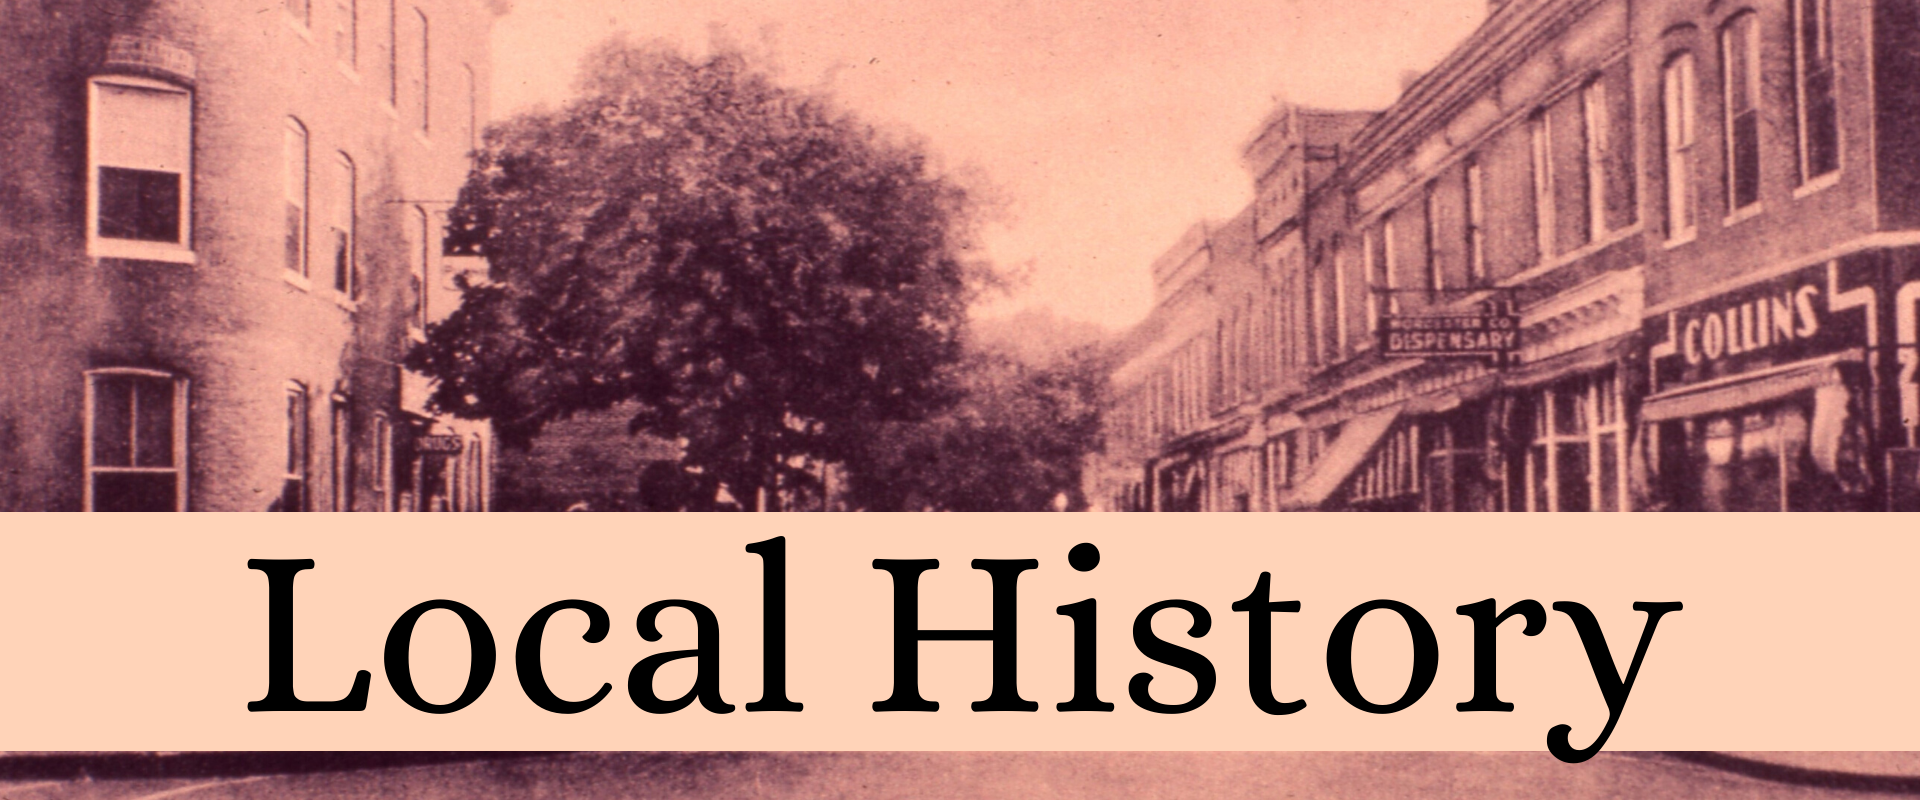 Local History Cover Photo